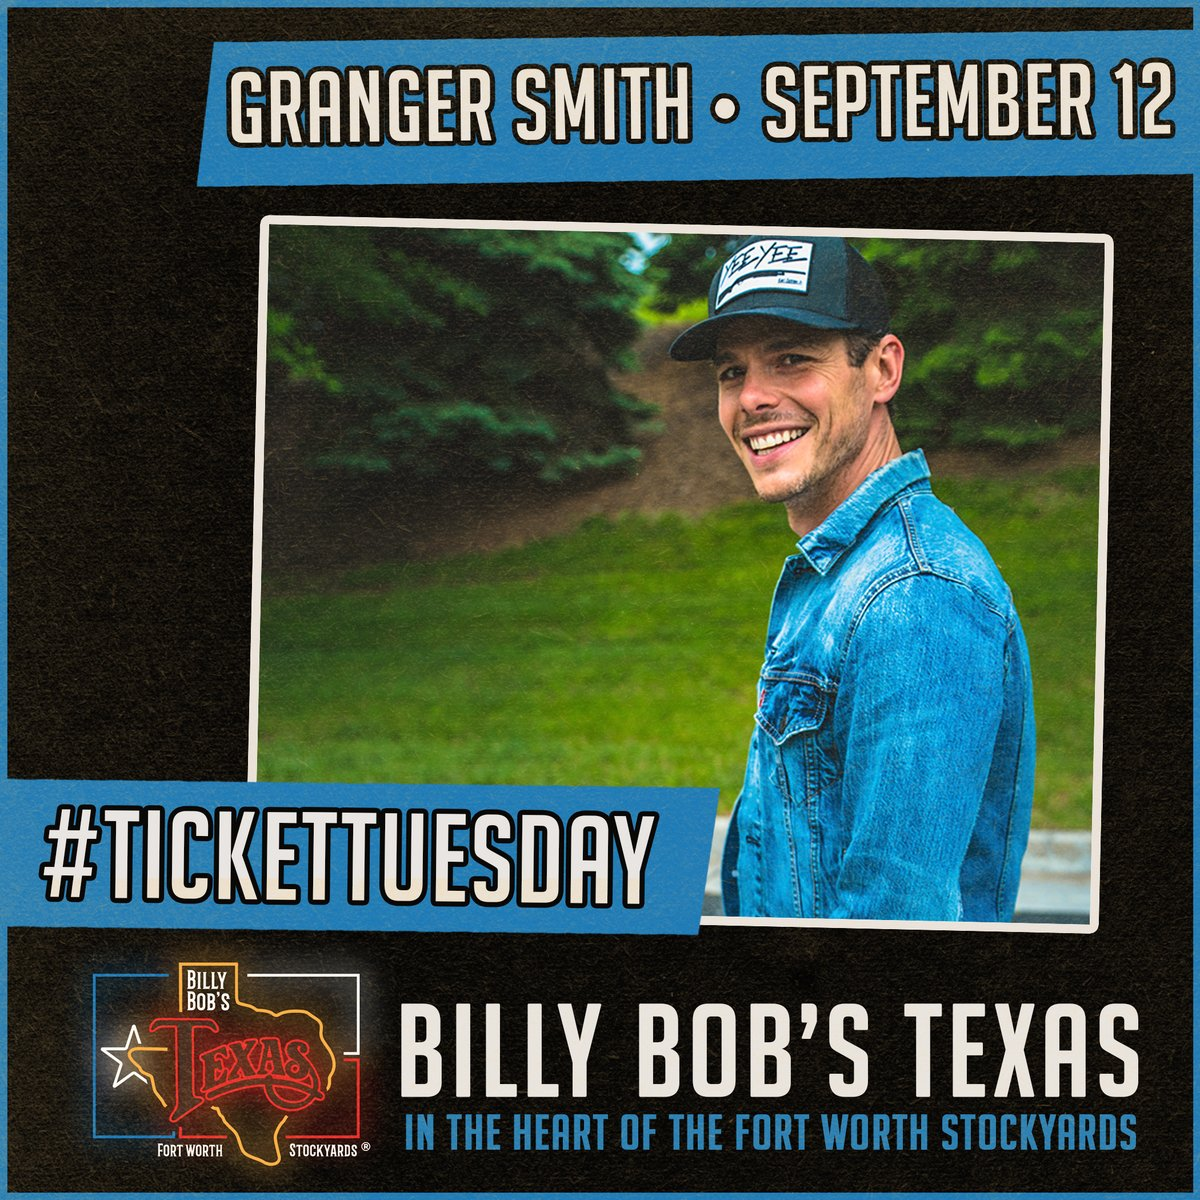 .@GrangerSmith returns to Billy Bob's Texas this Saturday, September 12. RT for your chance to win a pair of tickets to the show!   Get your tickets now at https://t.co/rmEvGkZhfD! https://t.co/bY8mqVGxd2